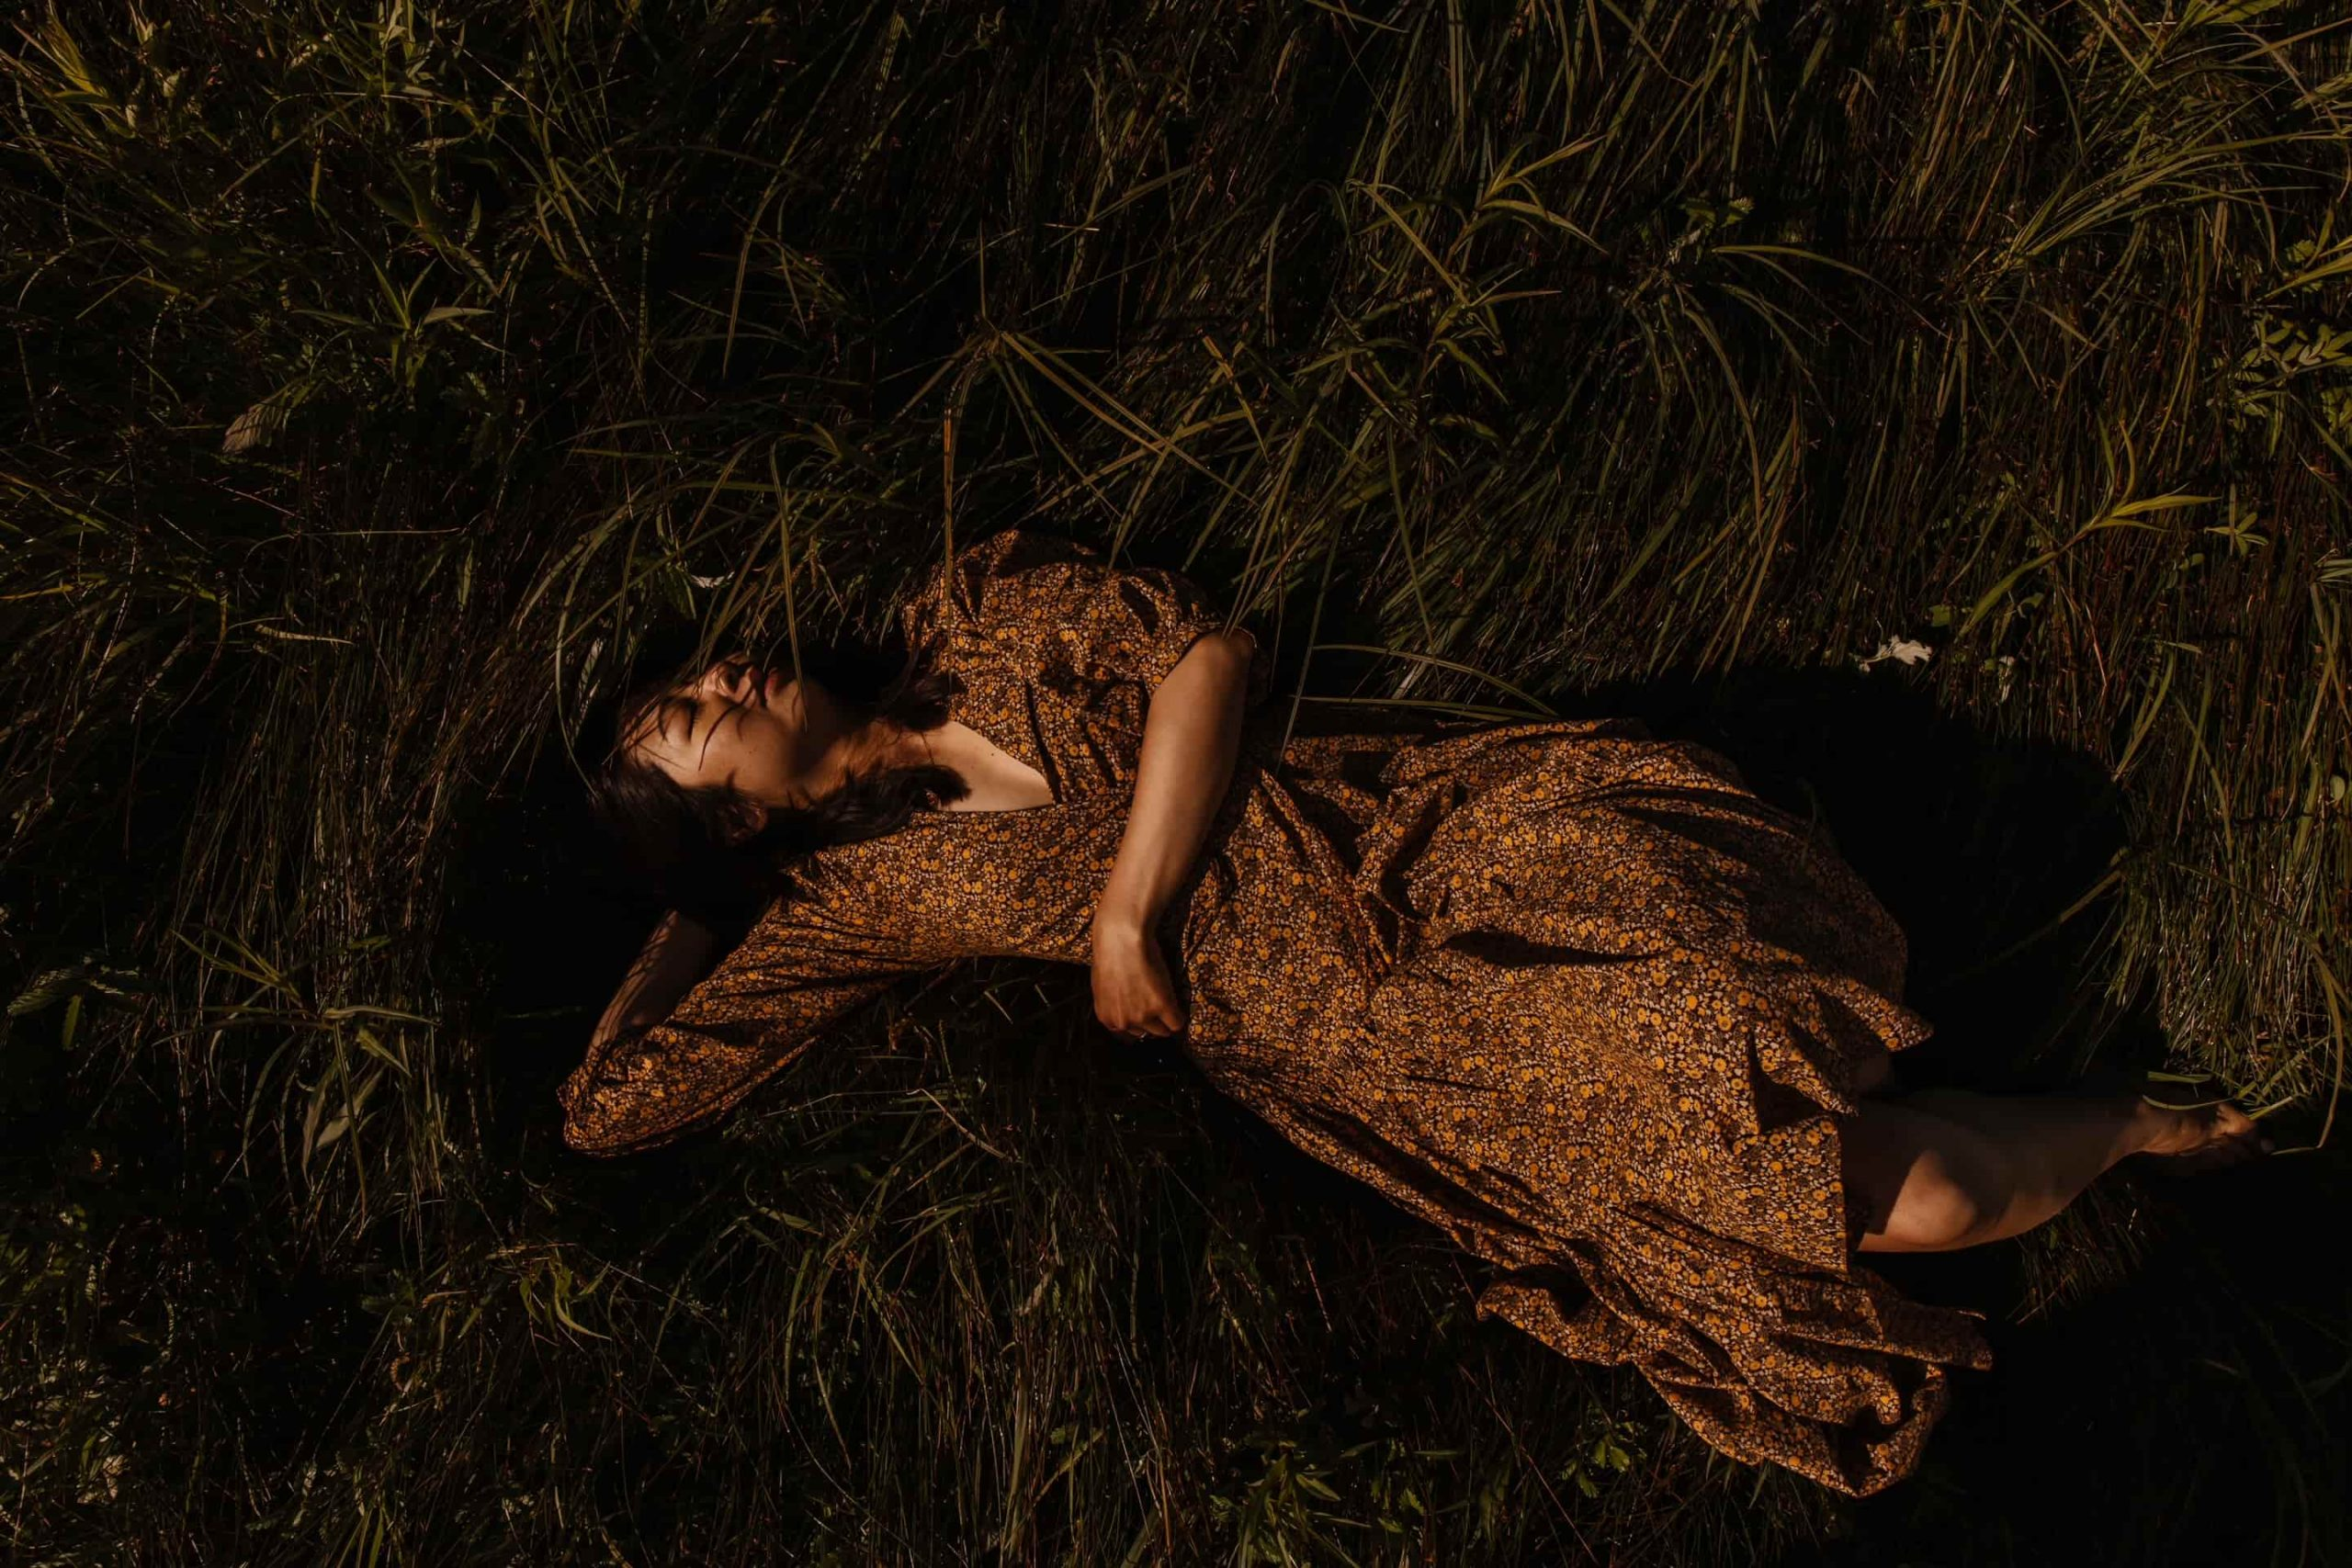 Taiwanese Canadian woman in golden-brown calico dress lies in grass